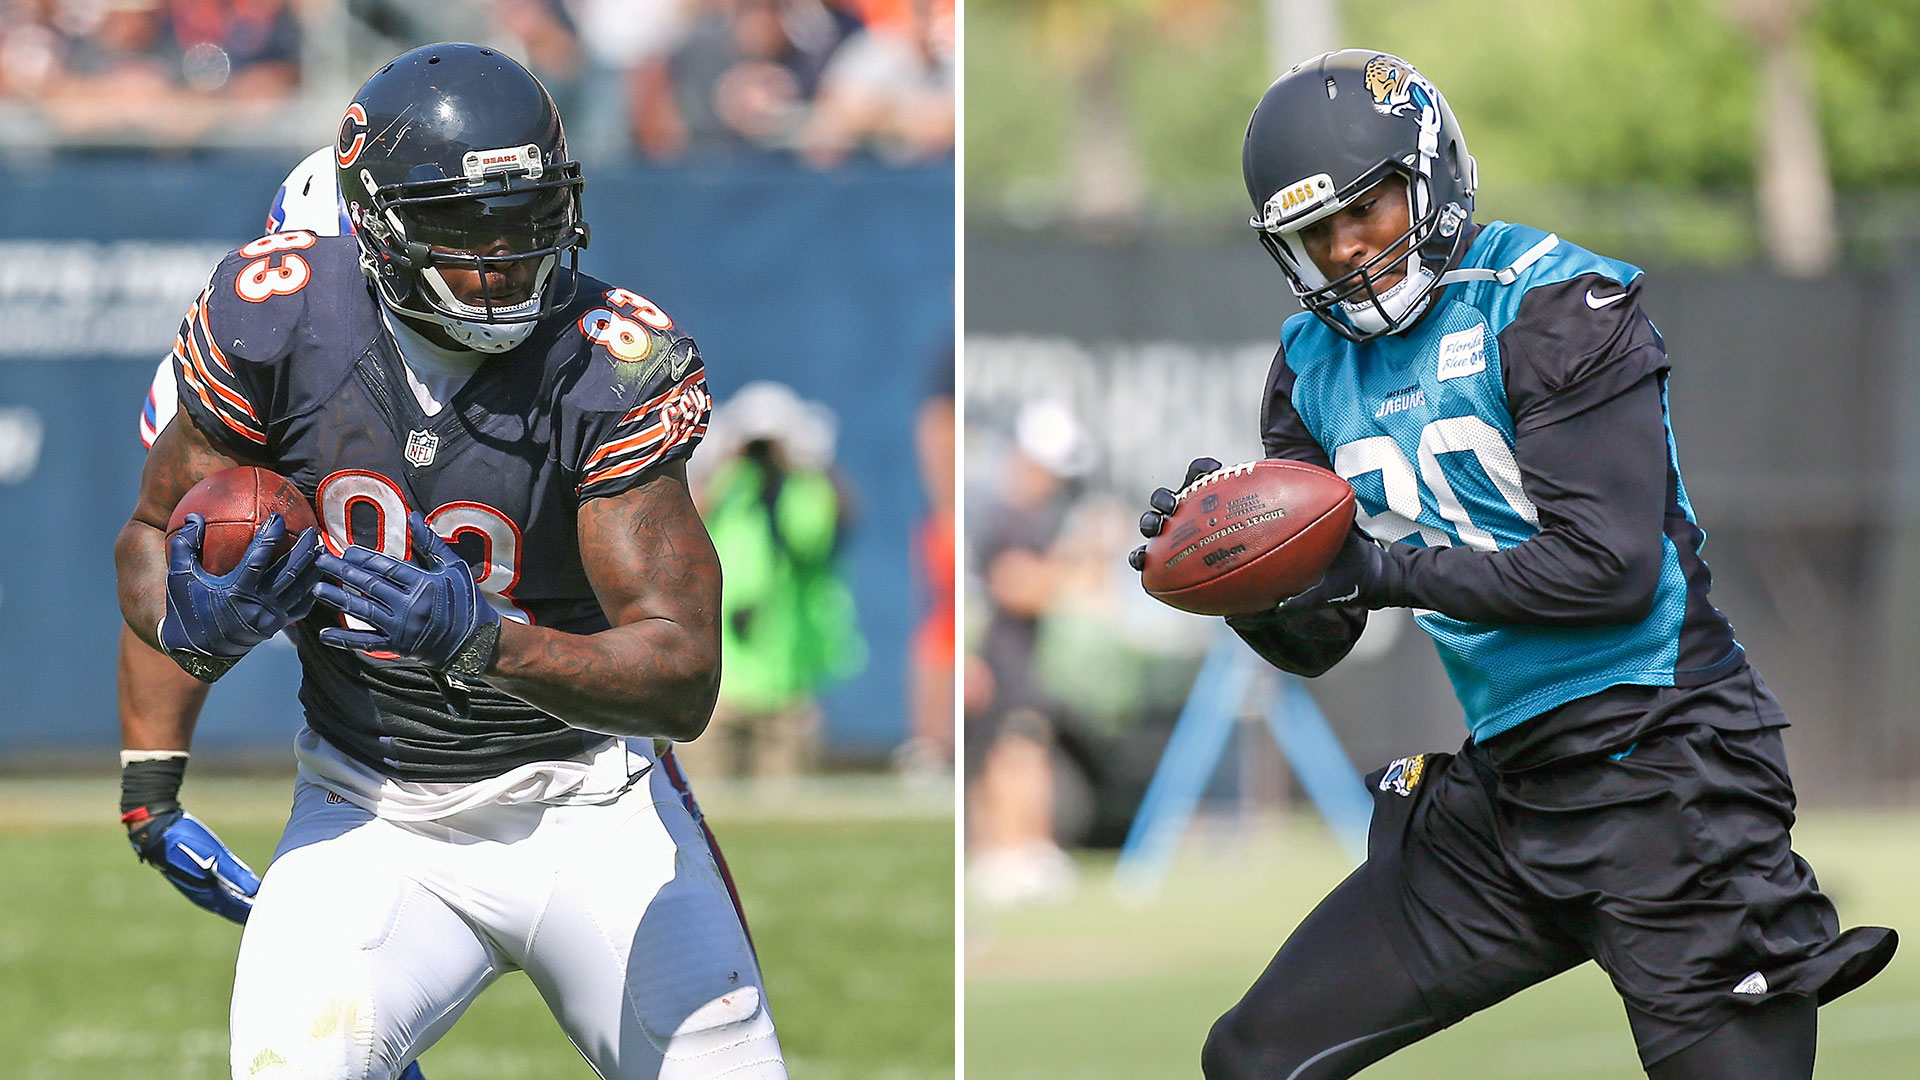 Martellus-Bennett-and-Julius-Thomas2-081315-GETTY-FTR.jpg